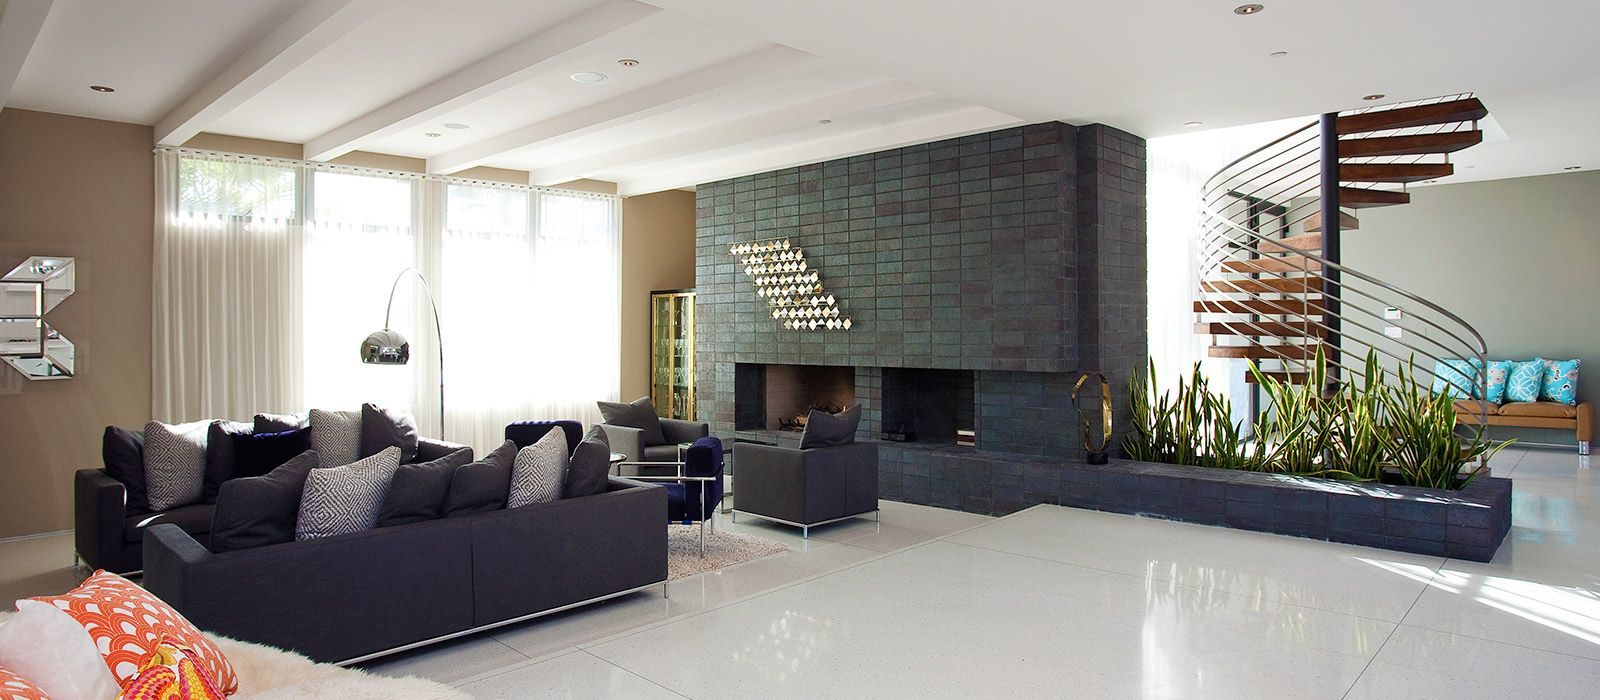 Interior living room modern classic style with furniture